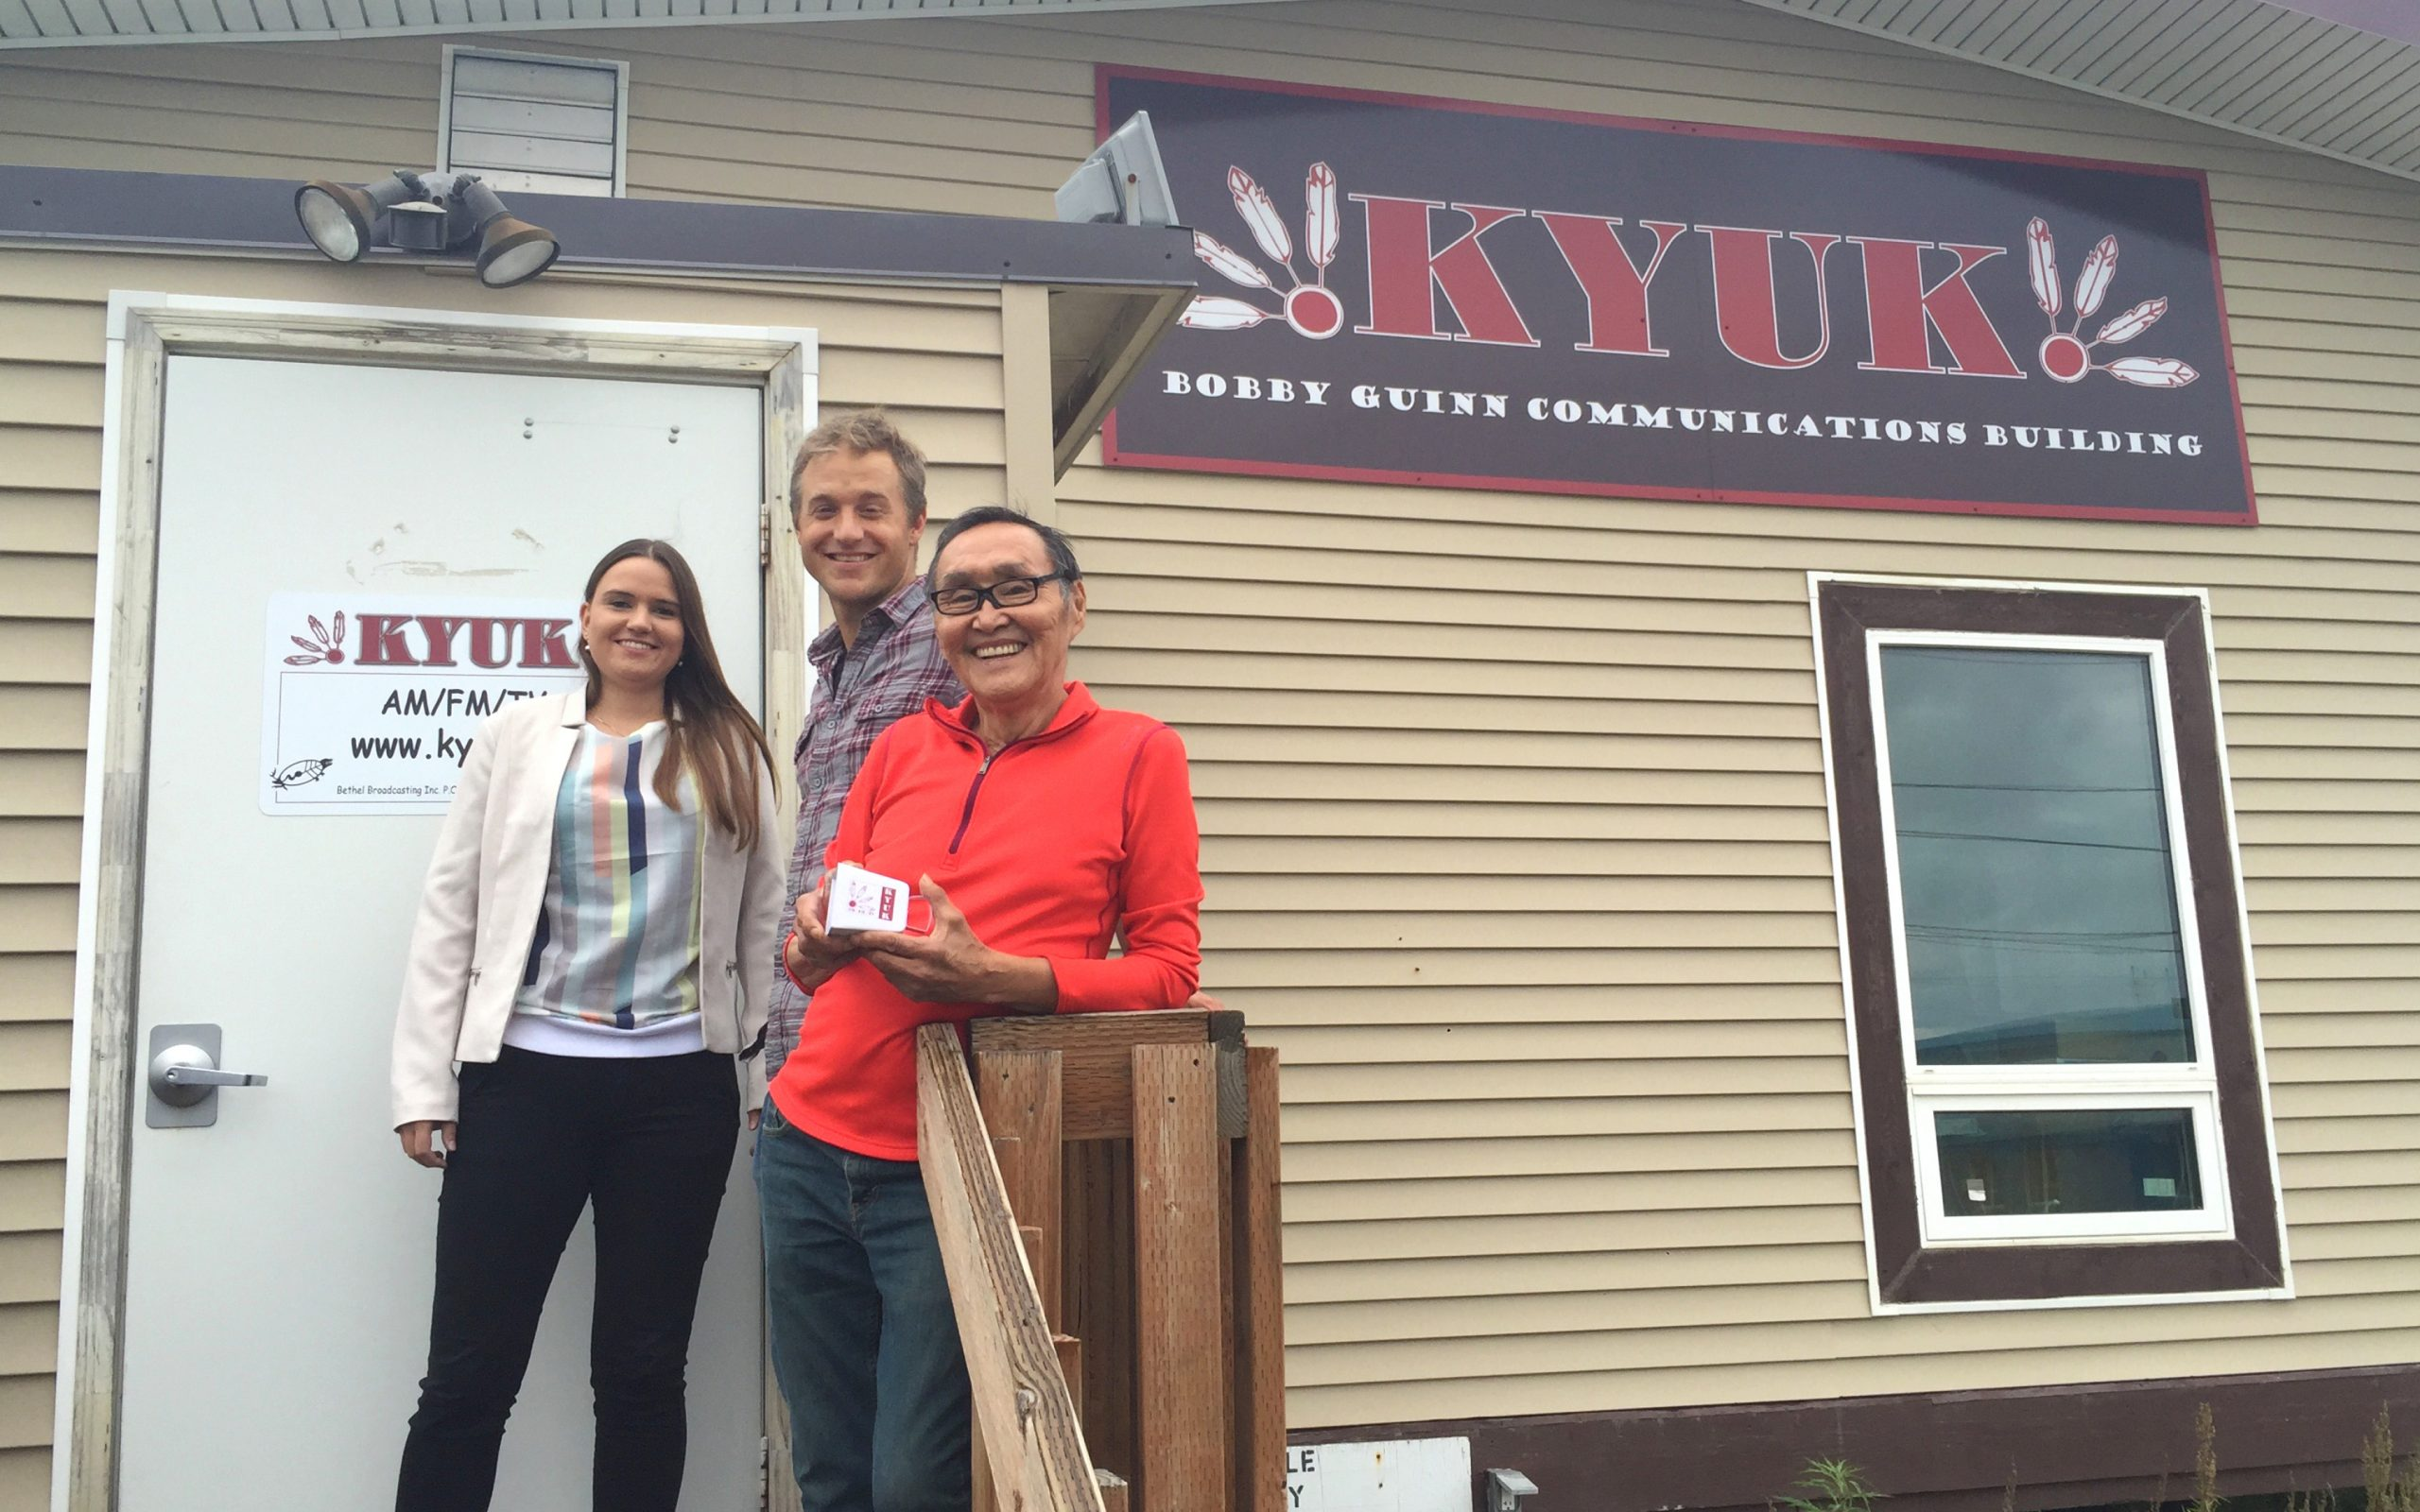 Three people standing in front of the KYUK radio station building.